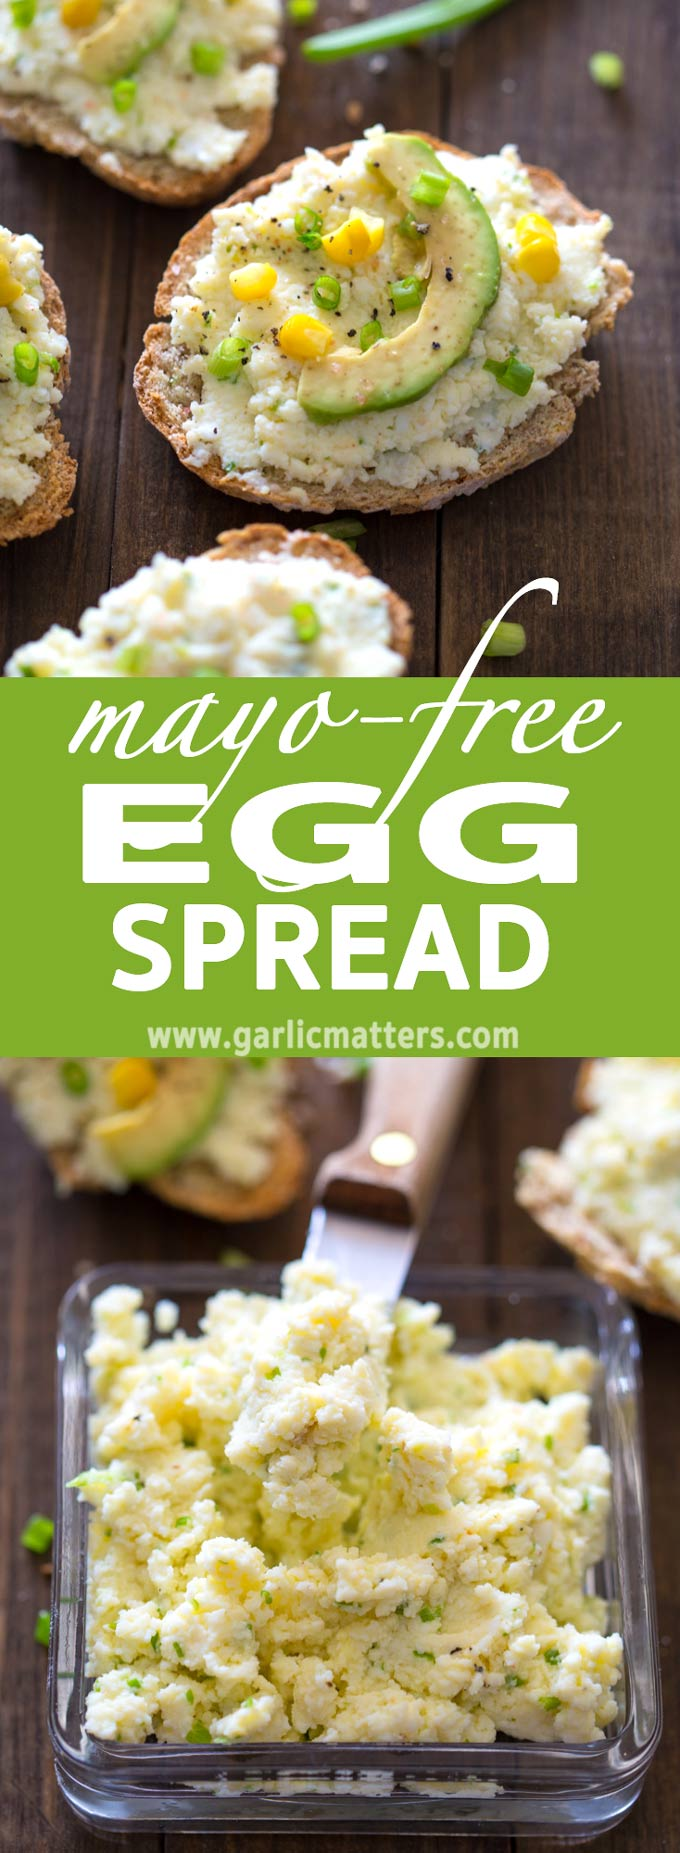 3 ingredients Mayo-Free Egg Spread Recipe and 60 seconds is all you need to celebrate spring in truly delicious style. Easy and clean.